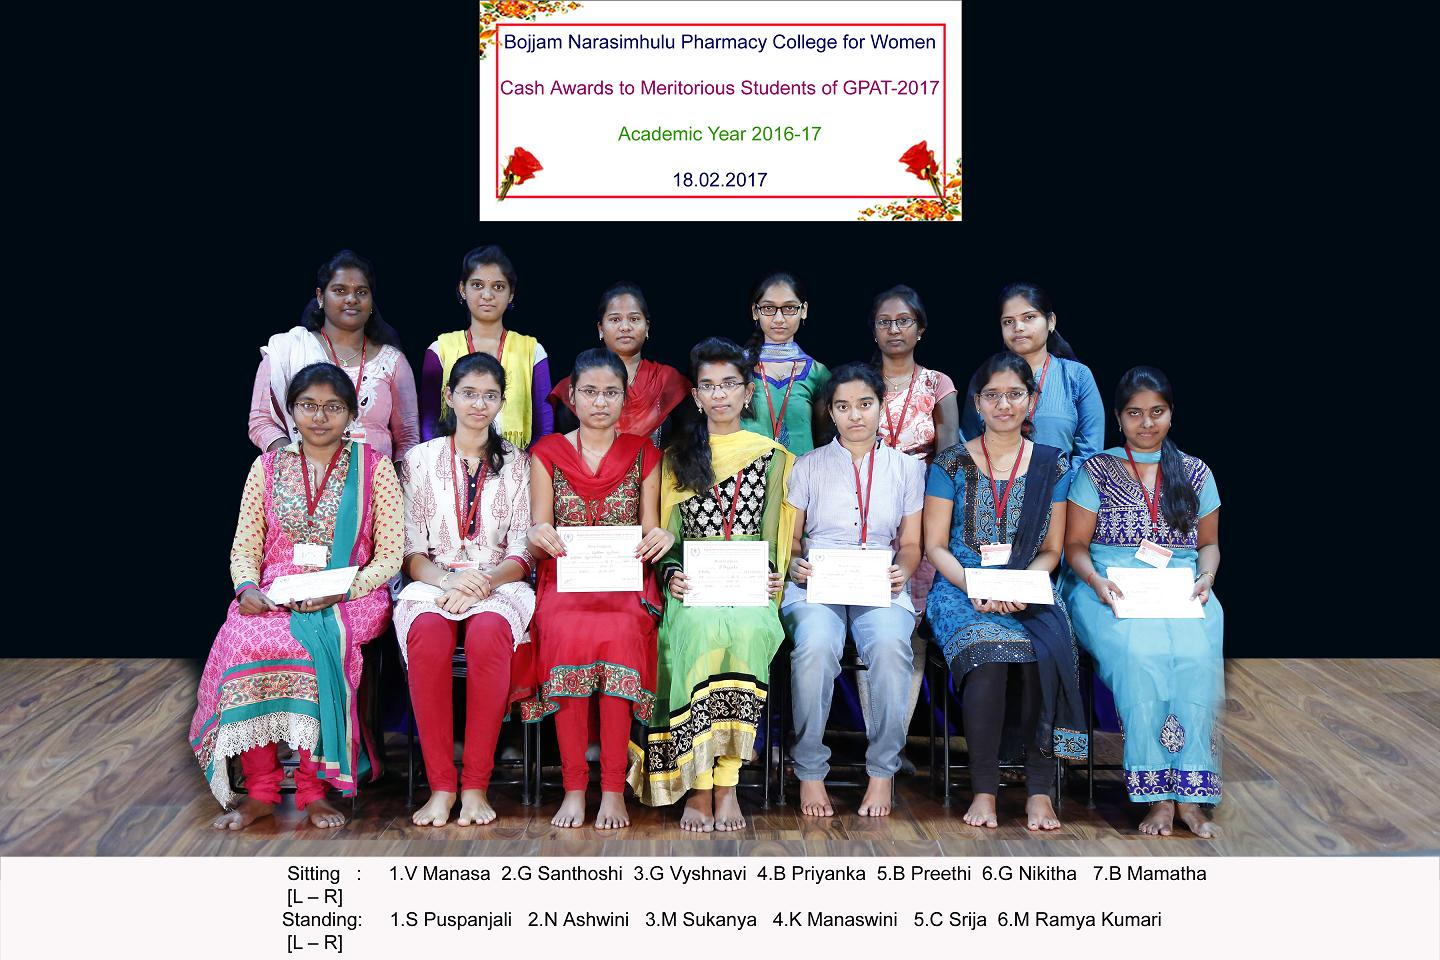 Cash Awards to Meritorious students of GPAT-2017 for the Academic Year 2016-17